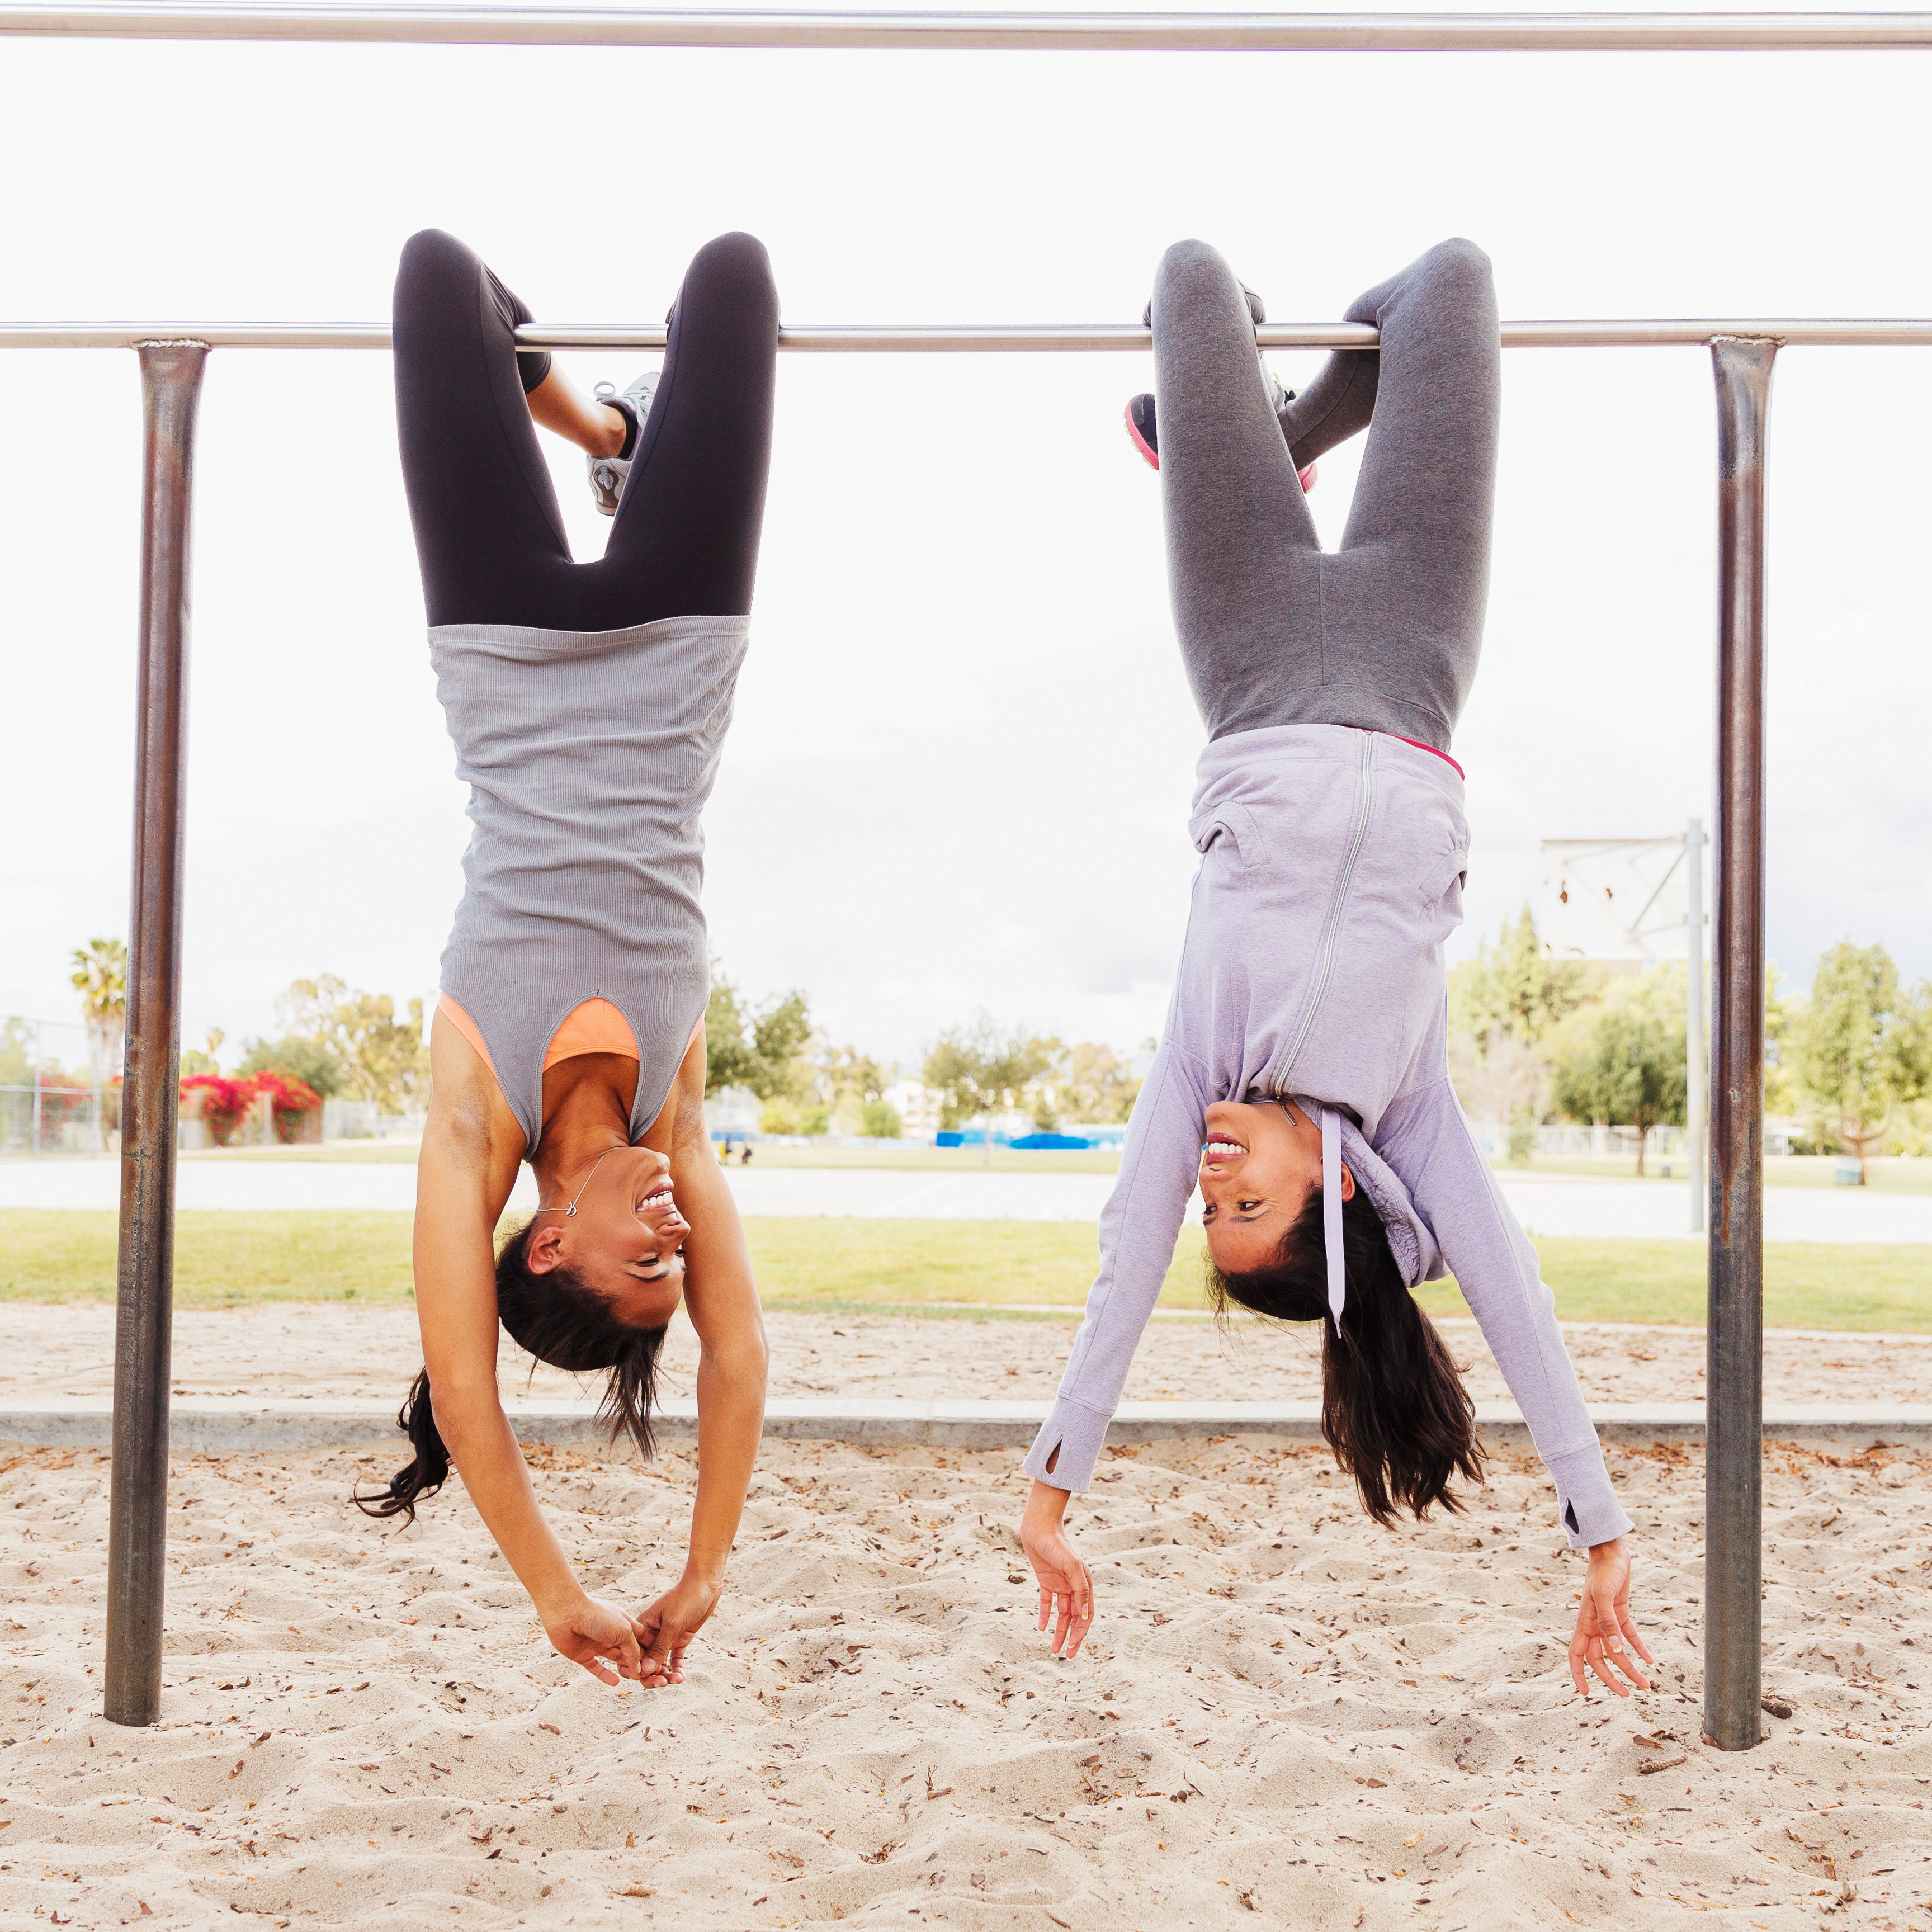 Gym Motivation 8 Good Reasons To Get A Fitness Buddy